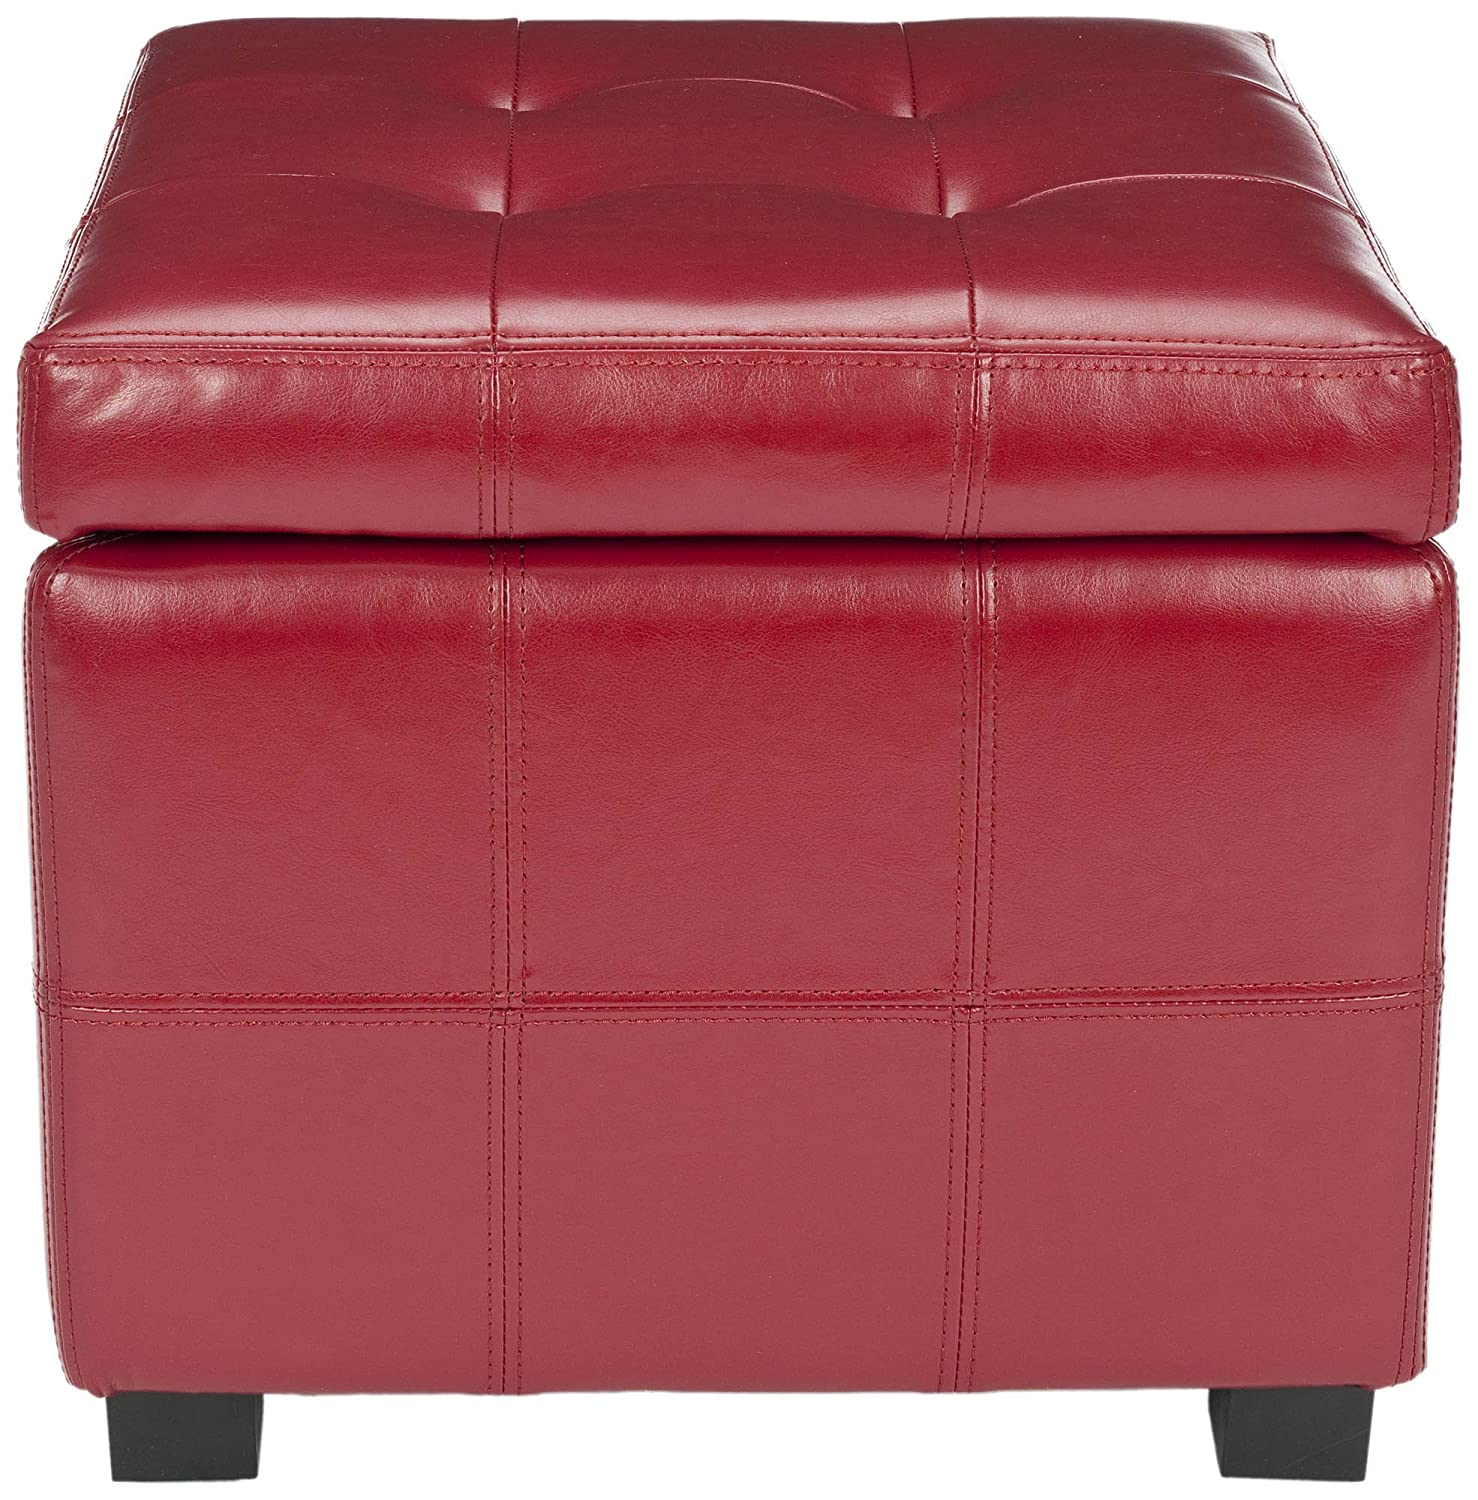 Amazon.com: Safavieh Hudson Collection NoHo Tufted Red Leather Square Storage  Ottoman: Kitchen U0026 Dining